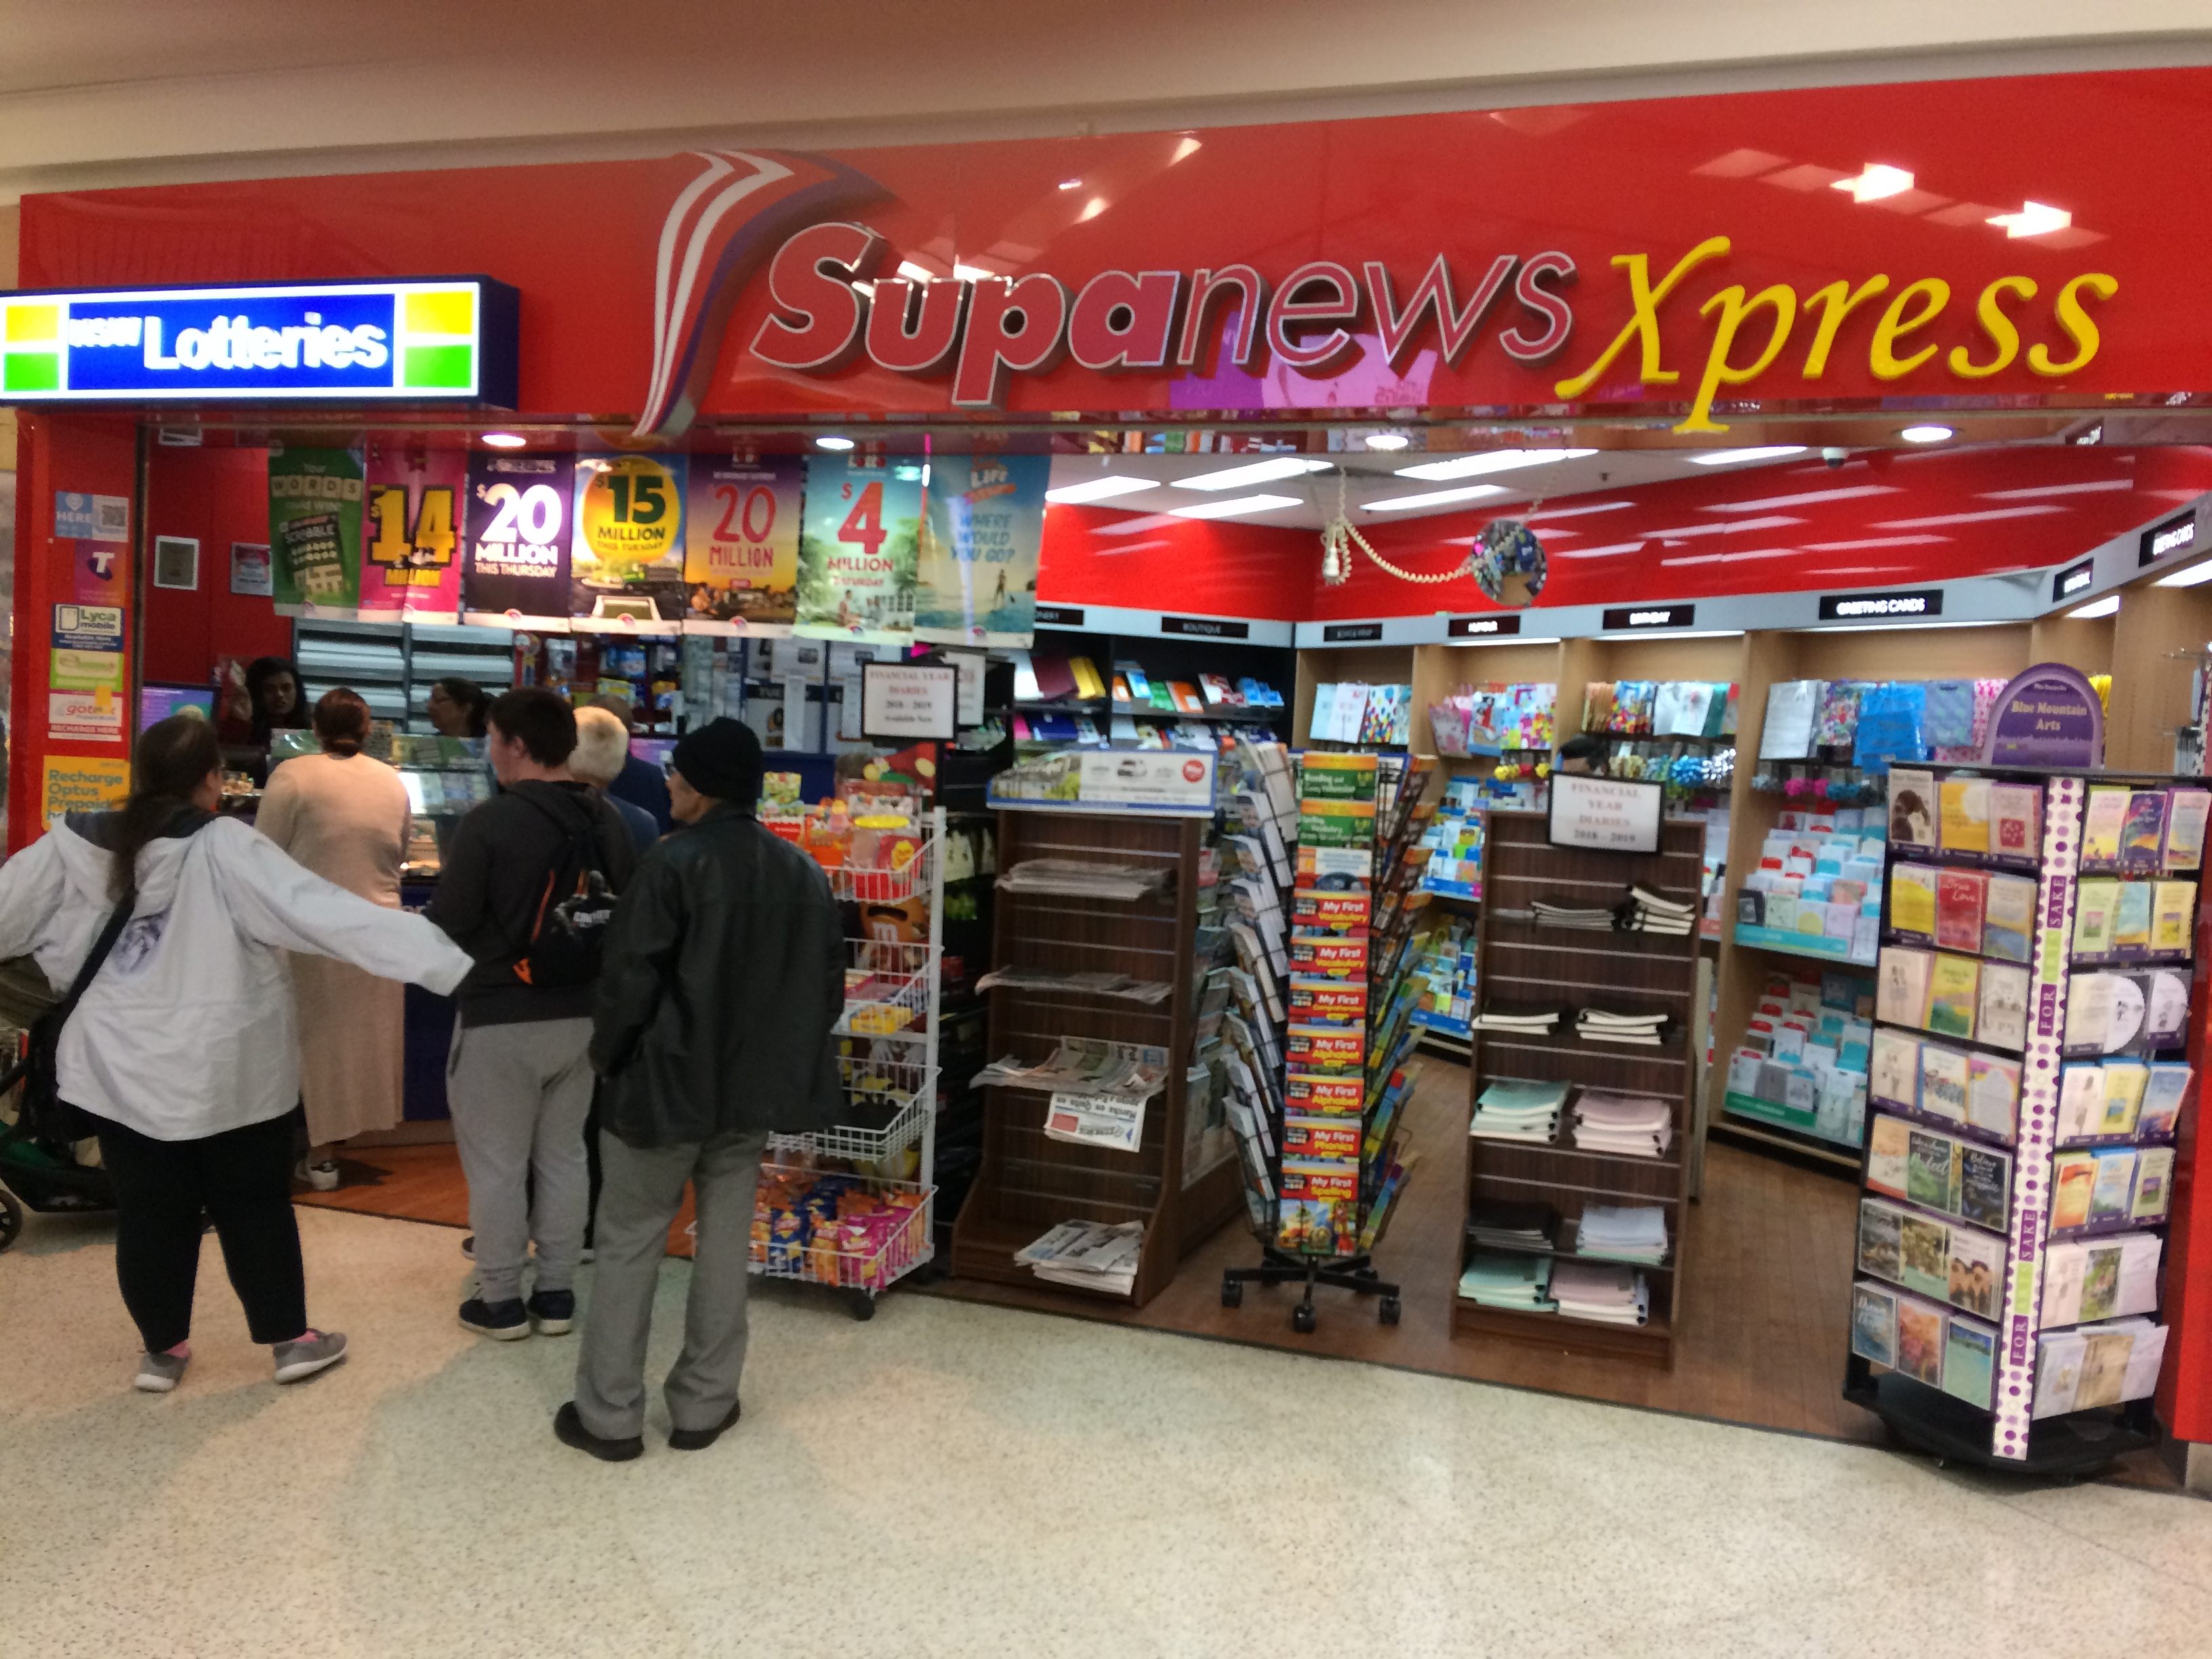 Established retail franchise for sale, Supanews  Bankstown Express